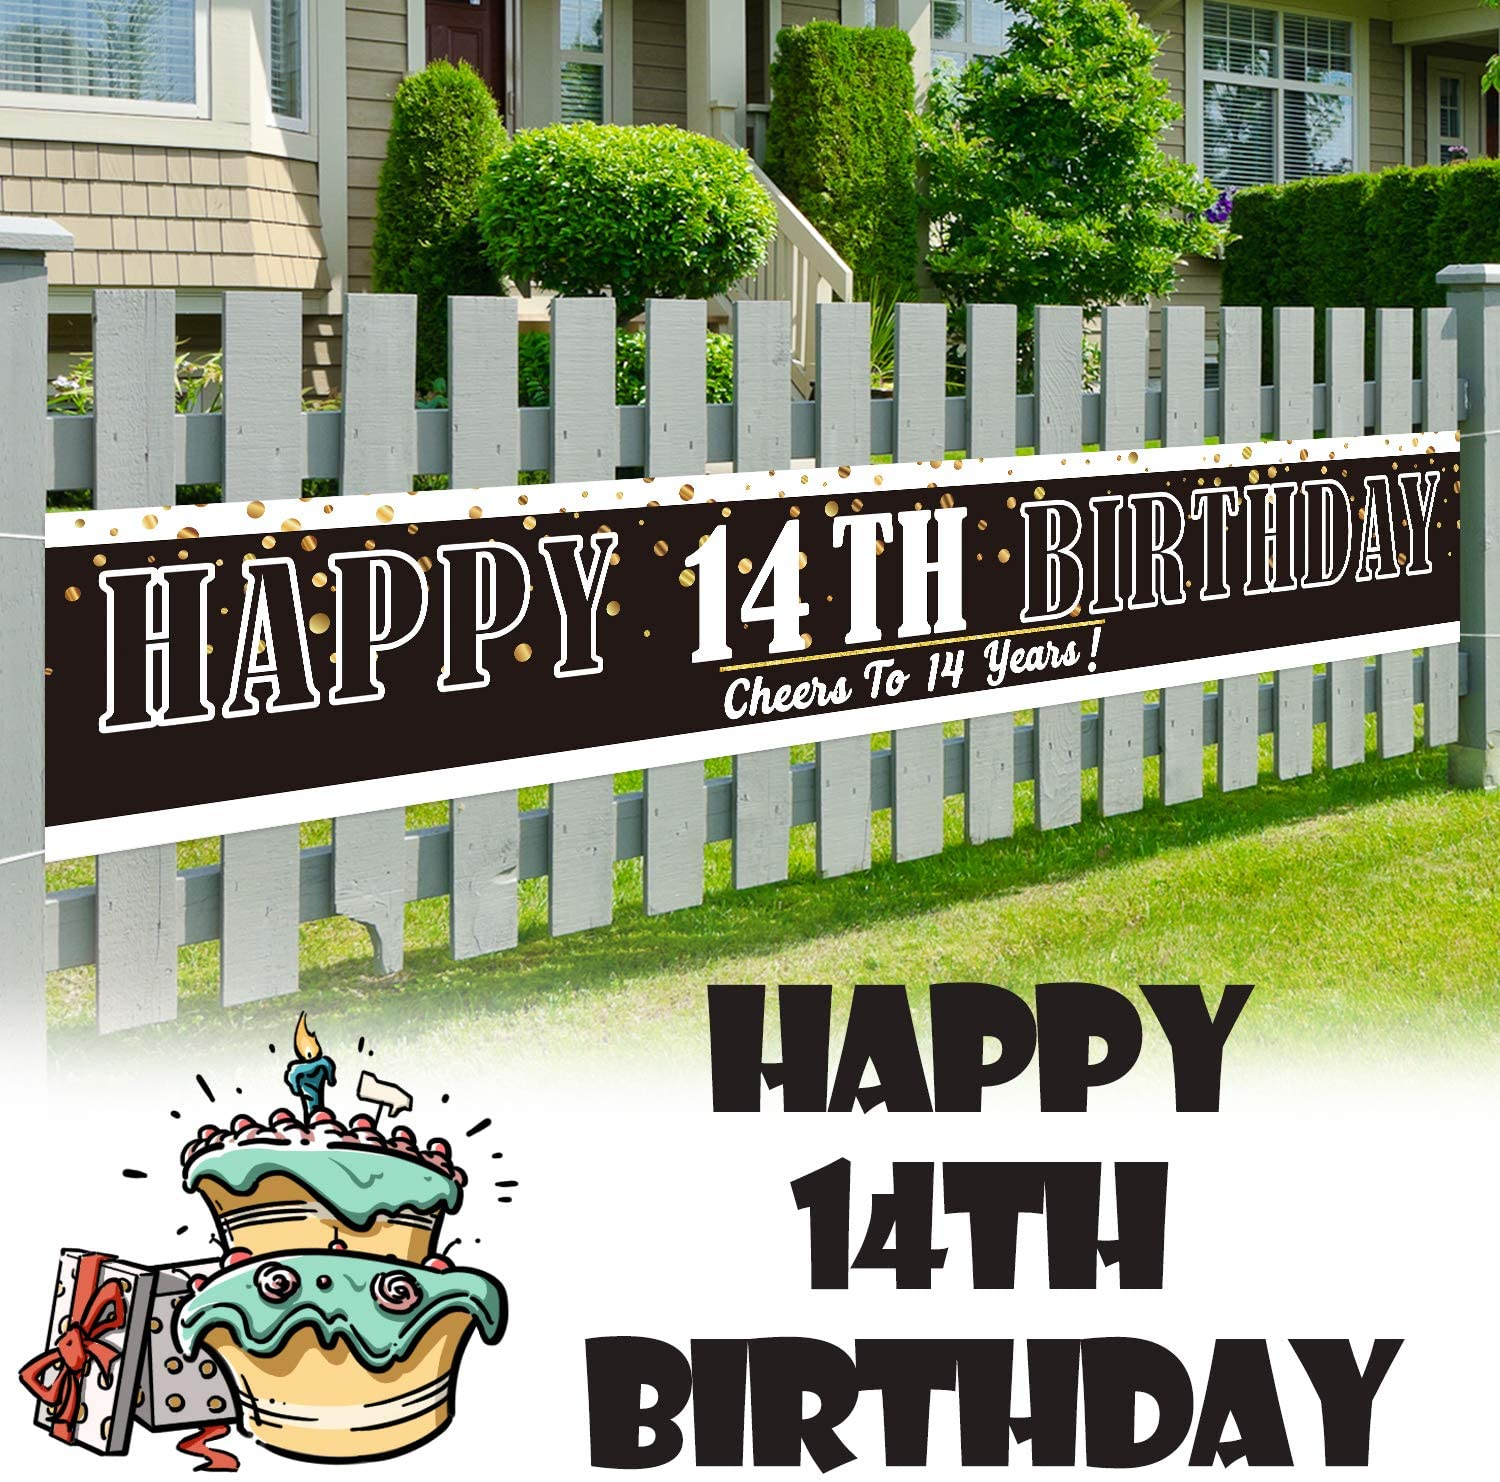 LINGPAR 9.8 x 1.6 ft Large Sign Happy 14th Birthday Banner - Cheers to 14 Years Old Decor